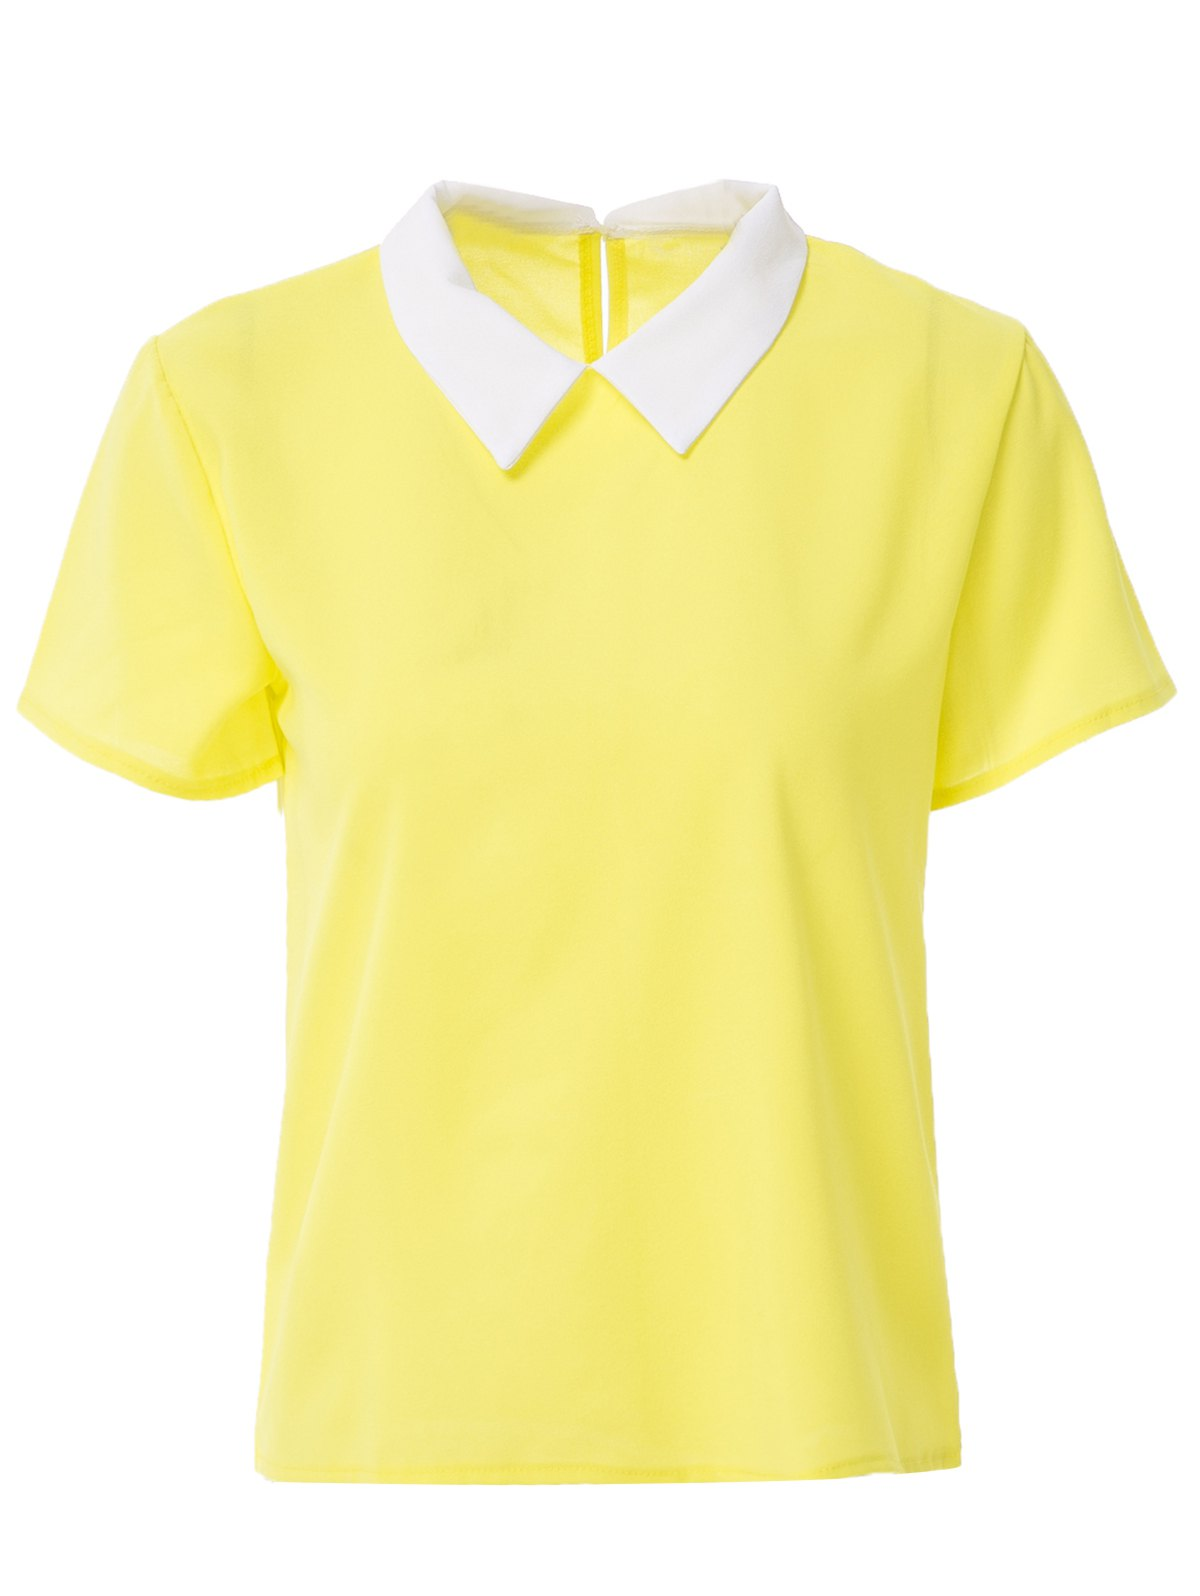 Short Sleeve Candy Color Blouse For Women - YELLOW S